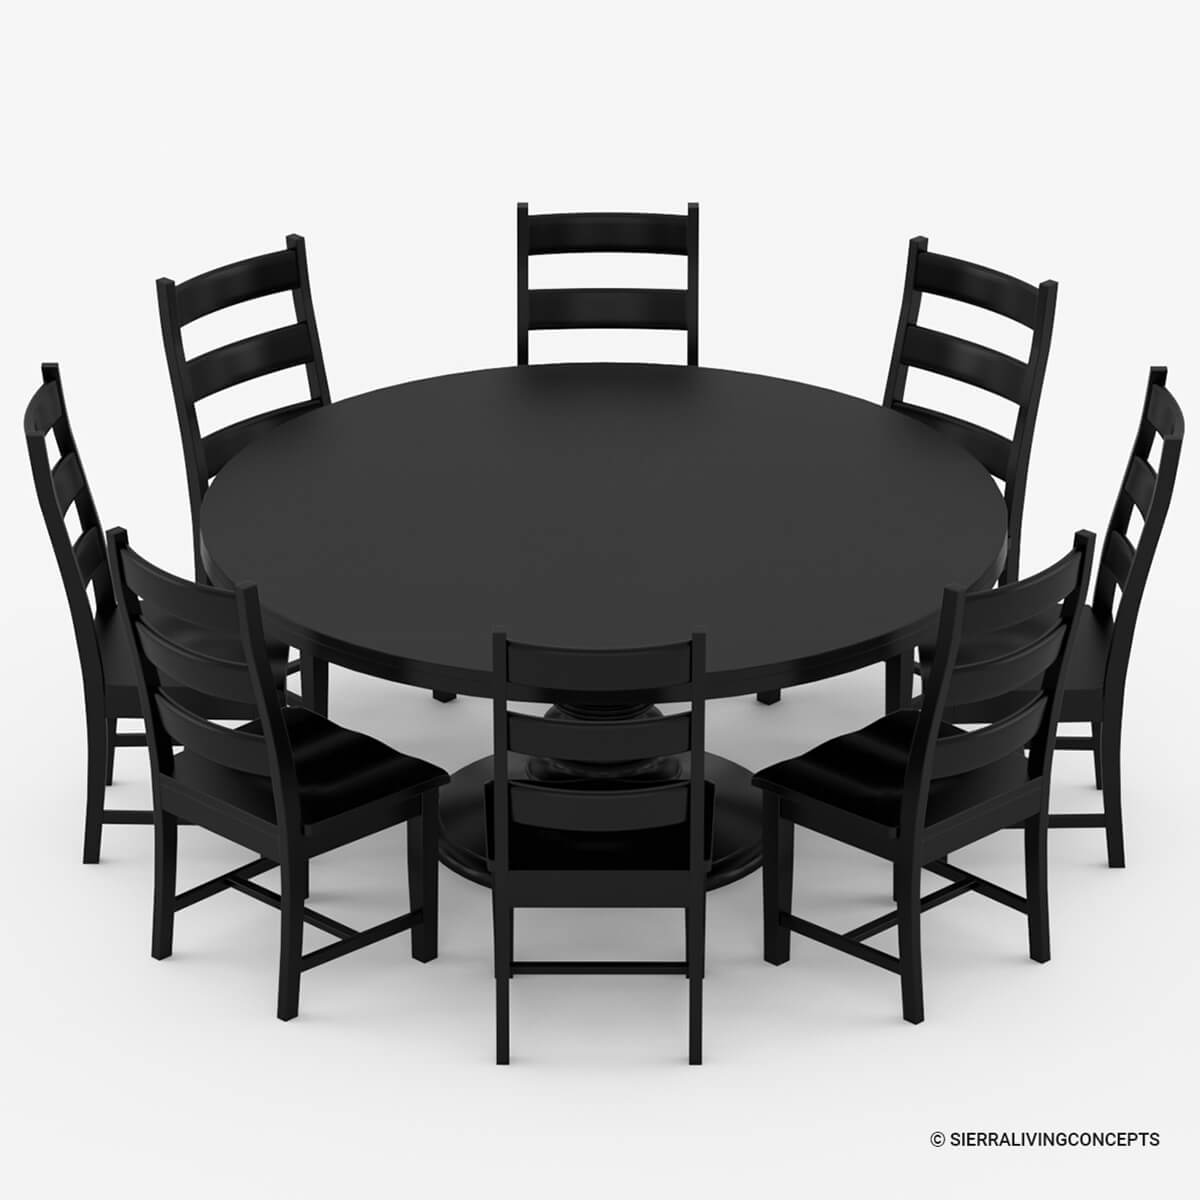 Nottingham rustic solid wood black round dining room table set for Black wood dining table